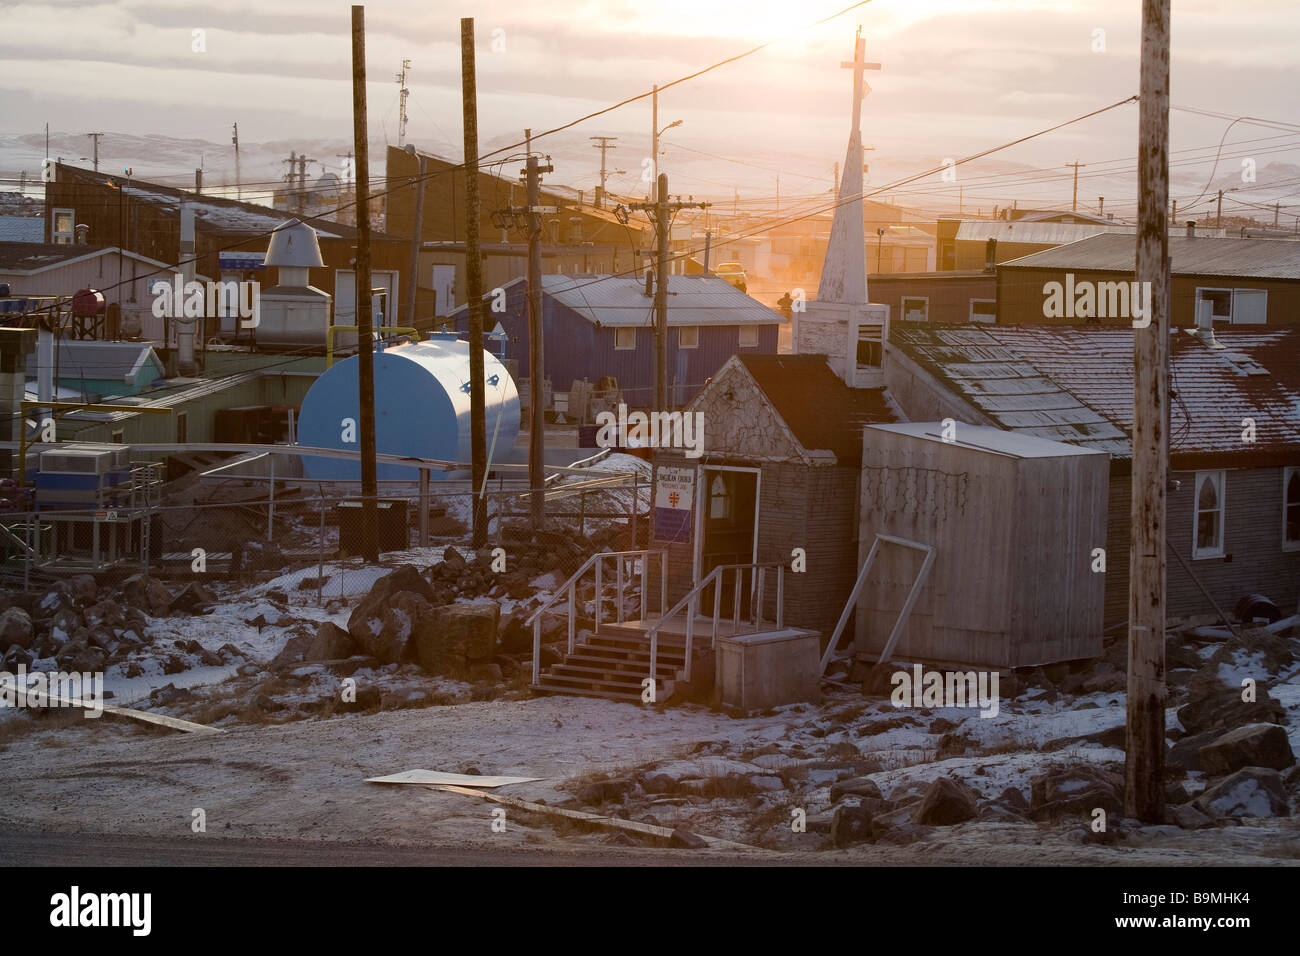 Traditional buildings at sunset in Taloyoak inuit settlement Nunavut, elevated view, Canadian arctic, Canada - Stock Image